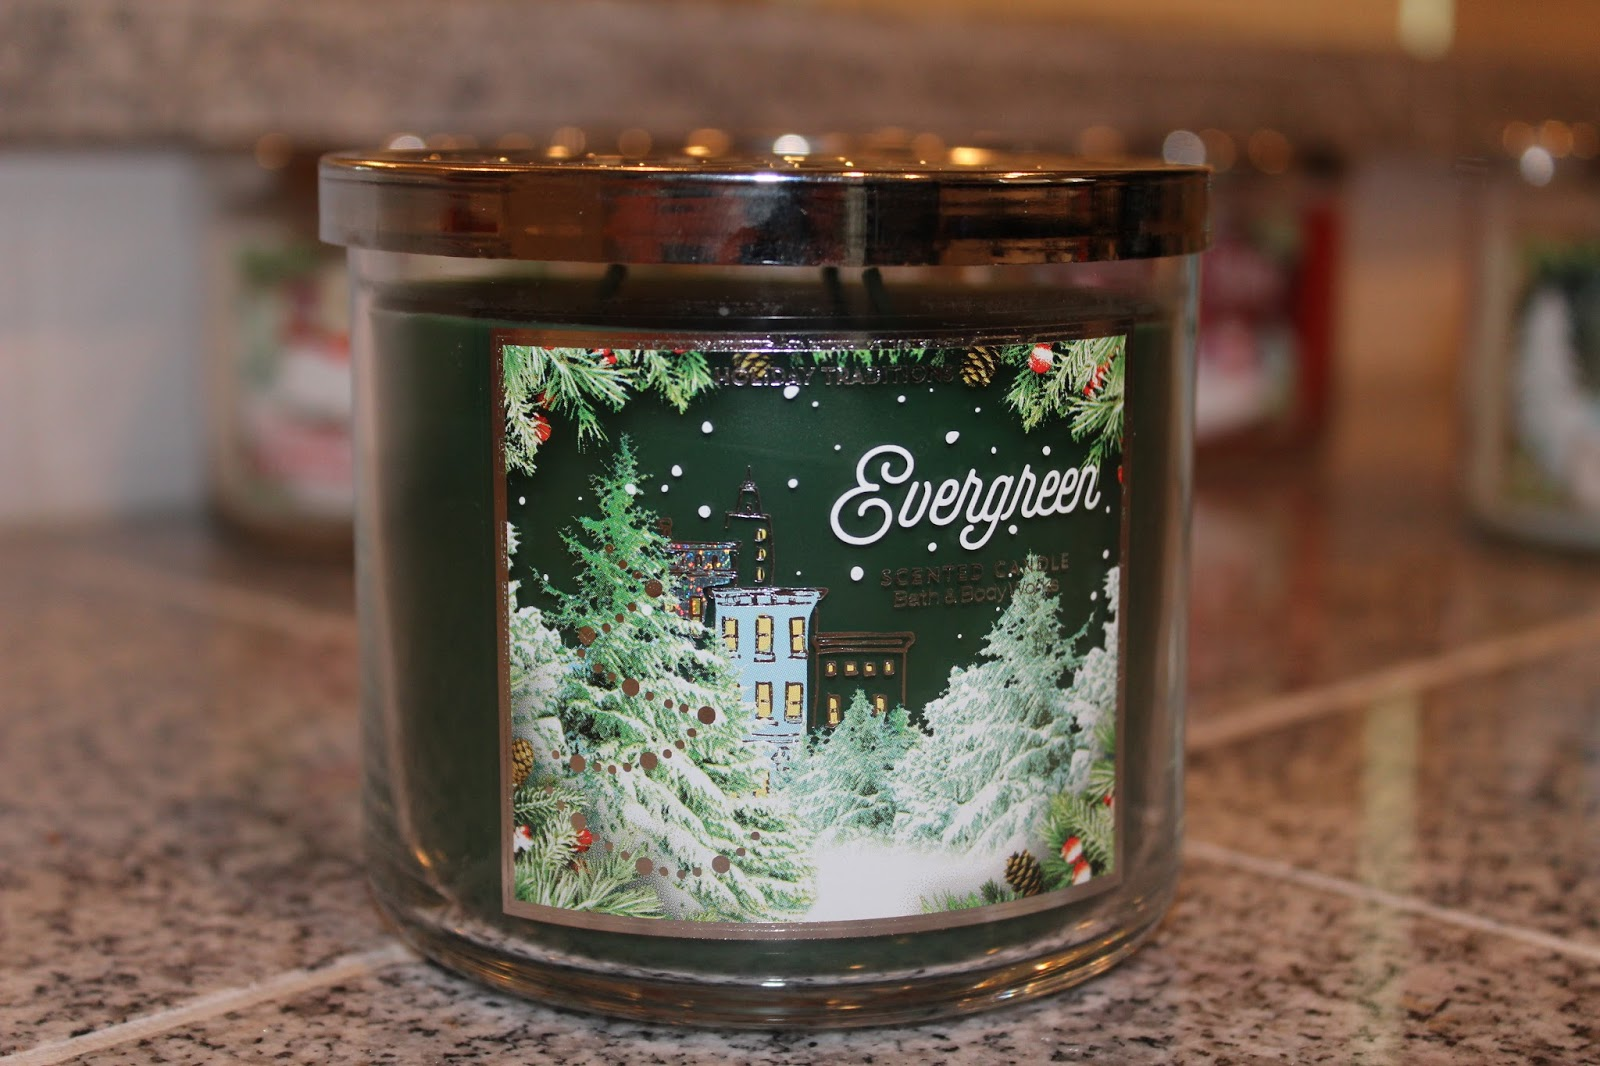 Earth to Kace: MY FAVORITE CHRISTMAS CANDLE SCENTS